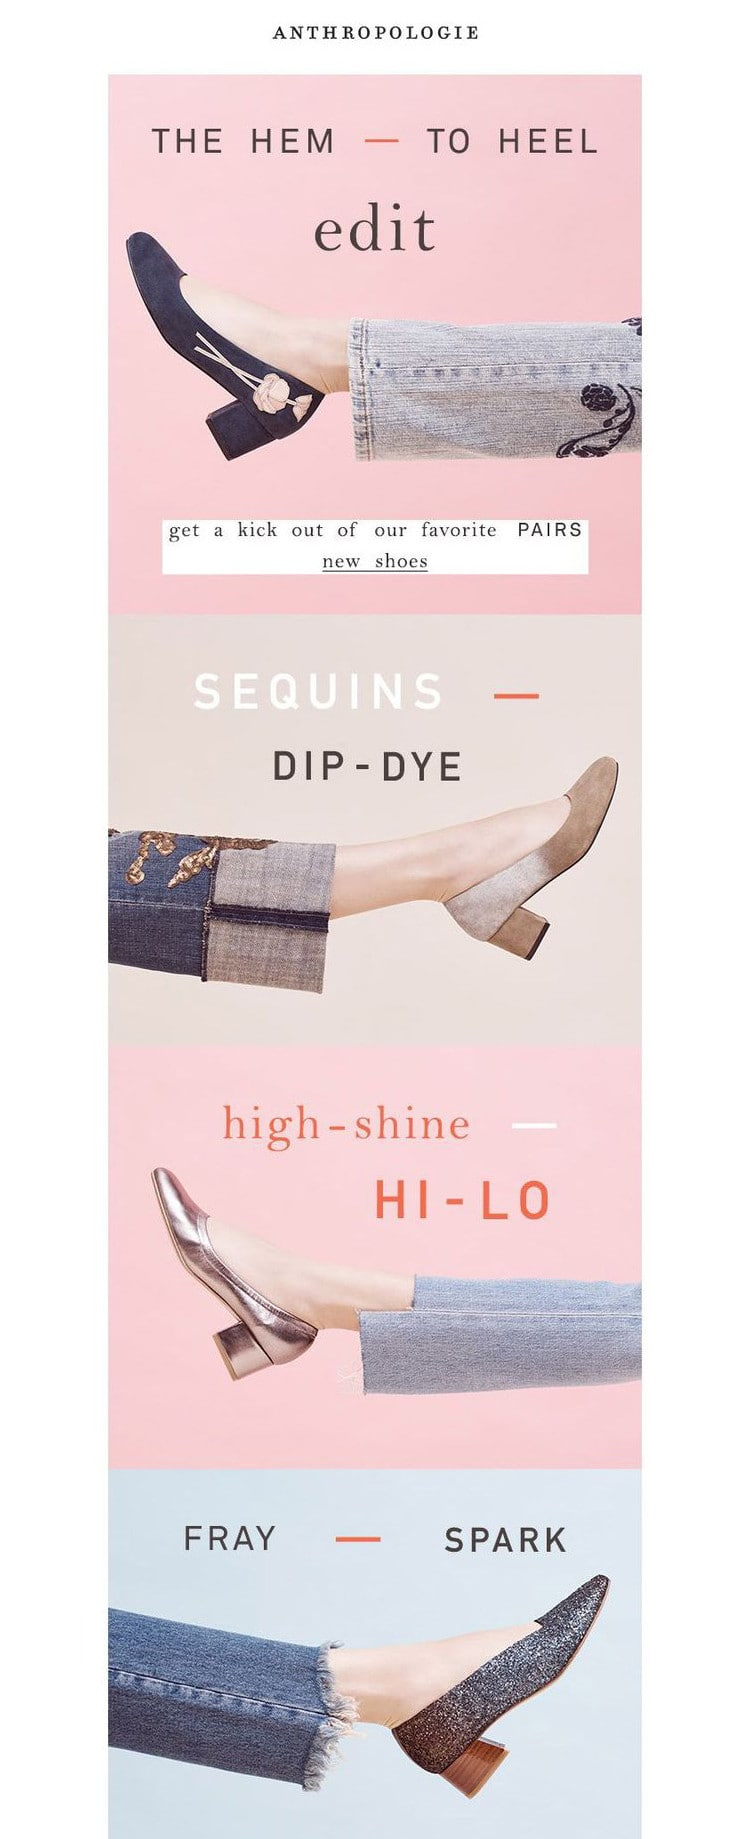 e-newletter email newsletter marketing design layout inspiration anthropologie fashion shoes youthful fun pink